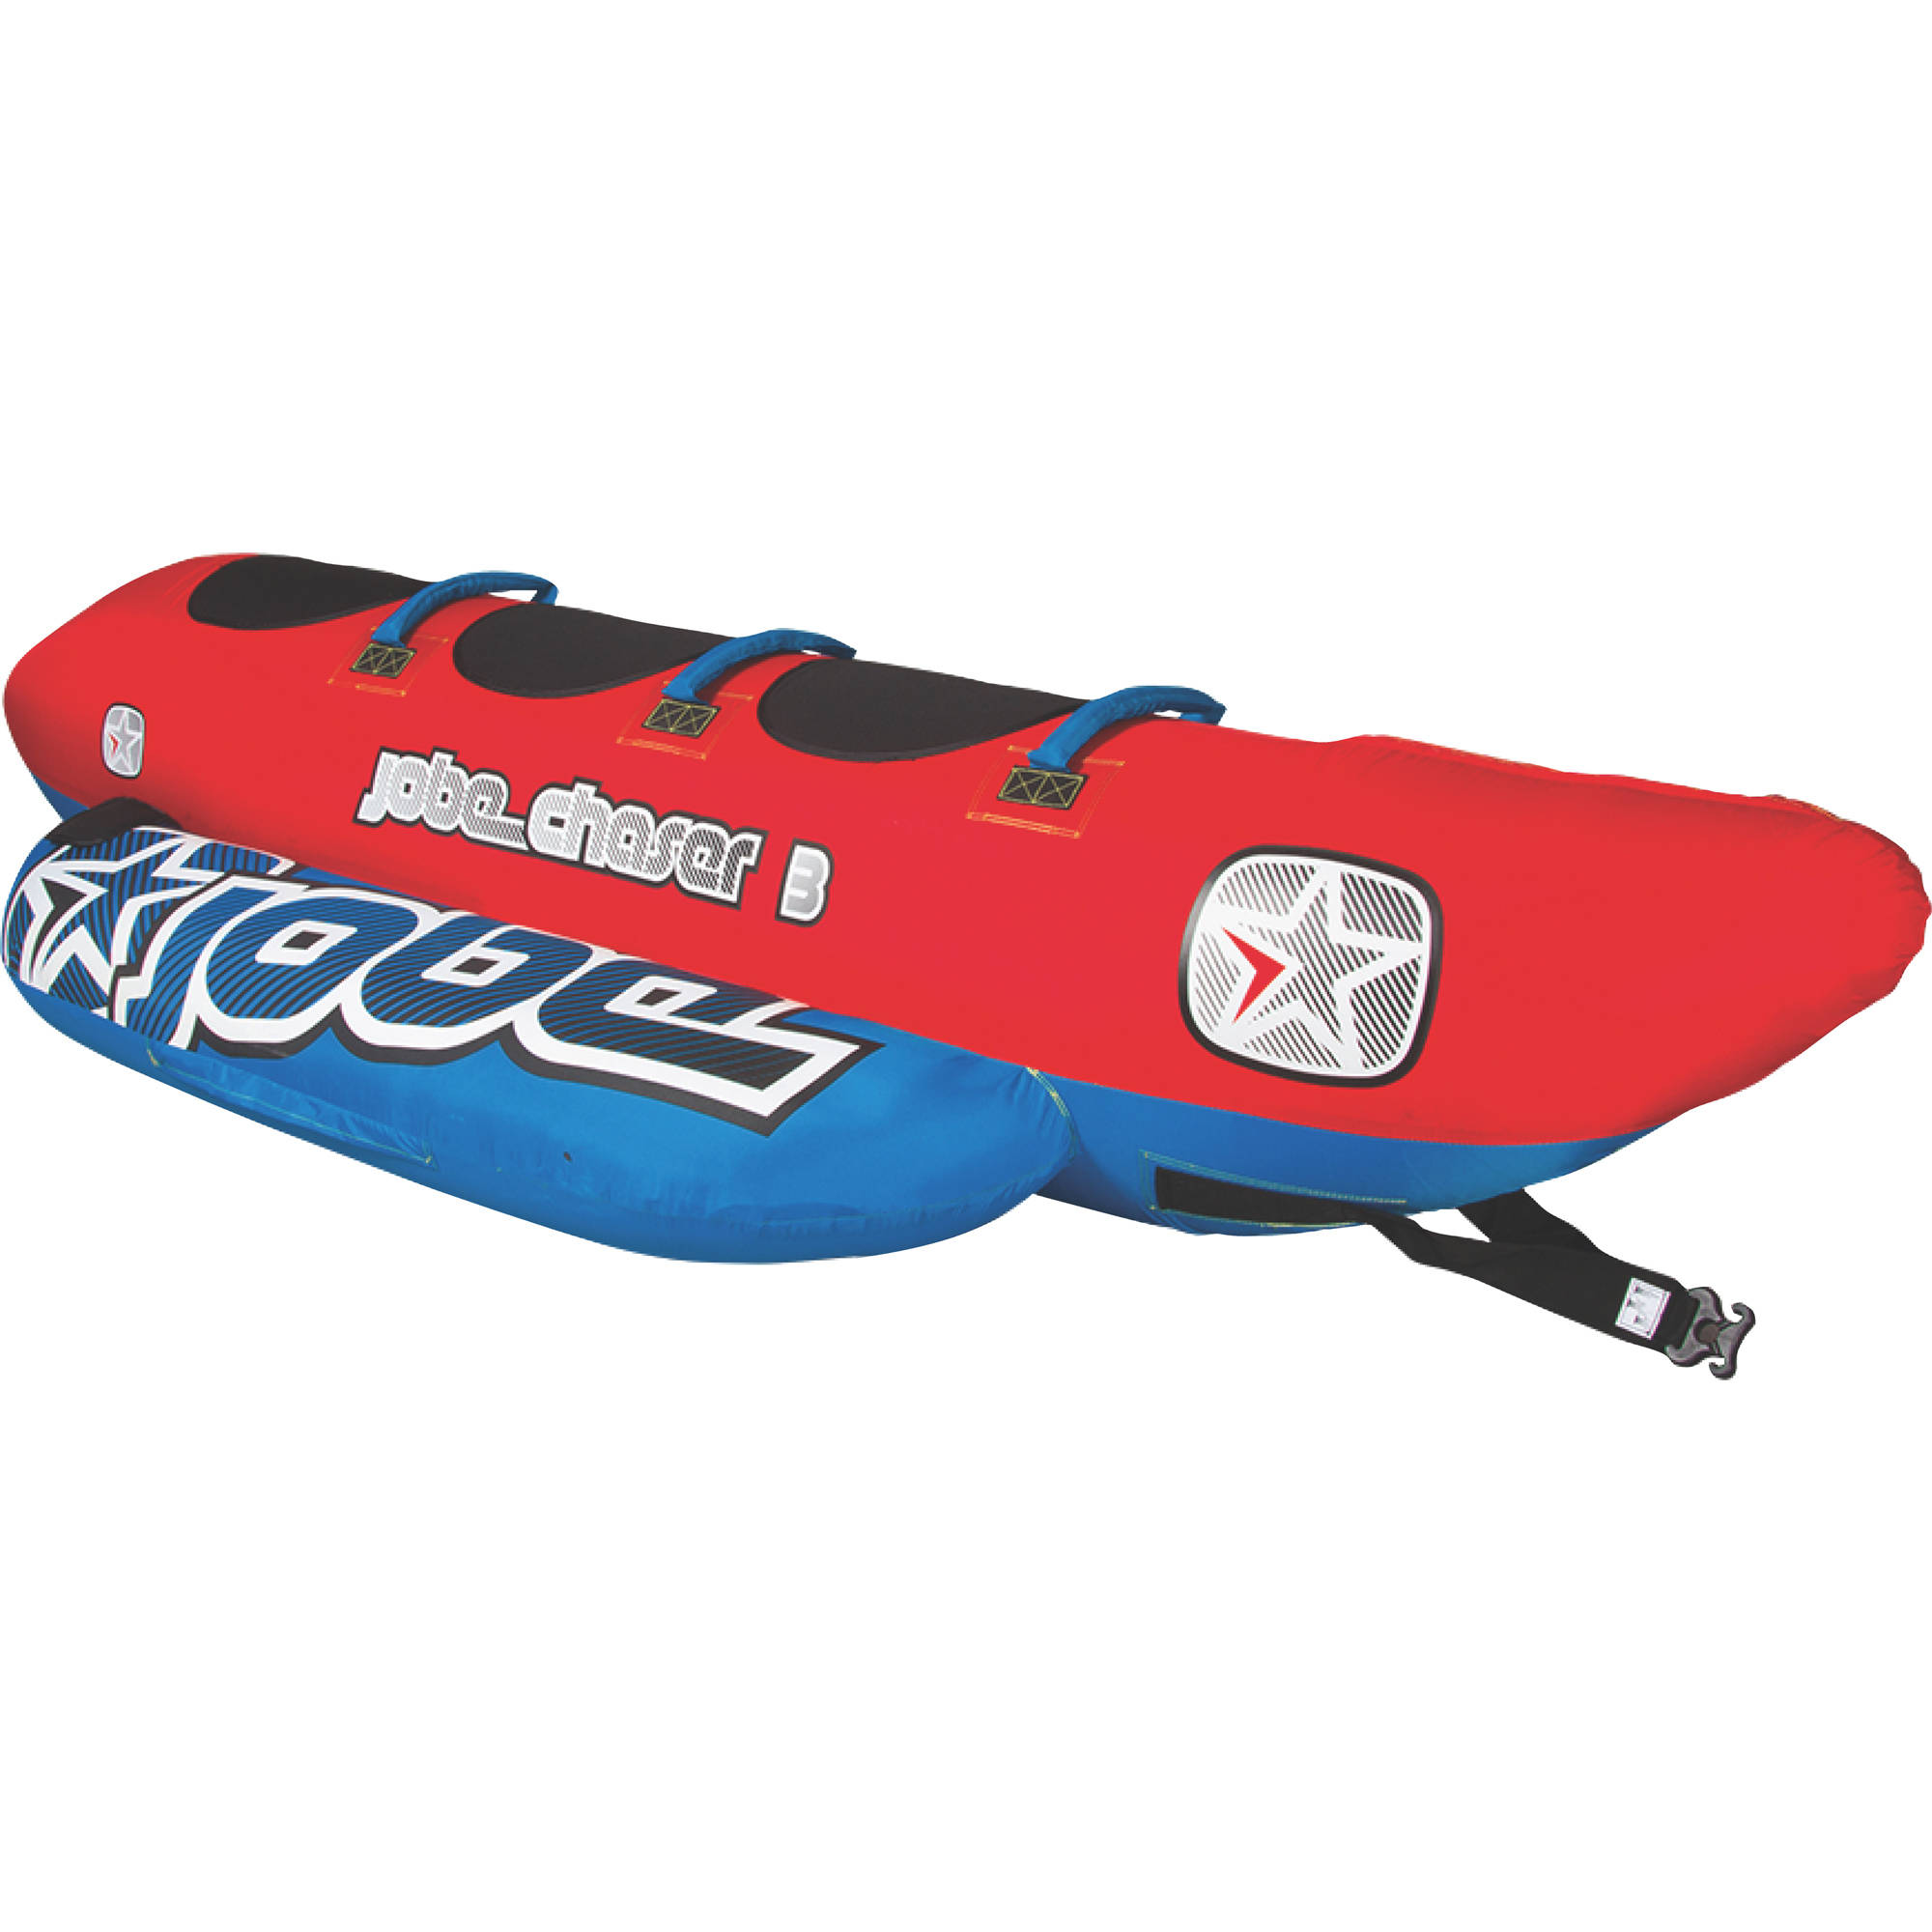 Jobe 230314001 Chaser 3 Person Inflatable Towable